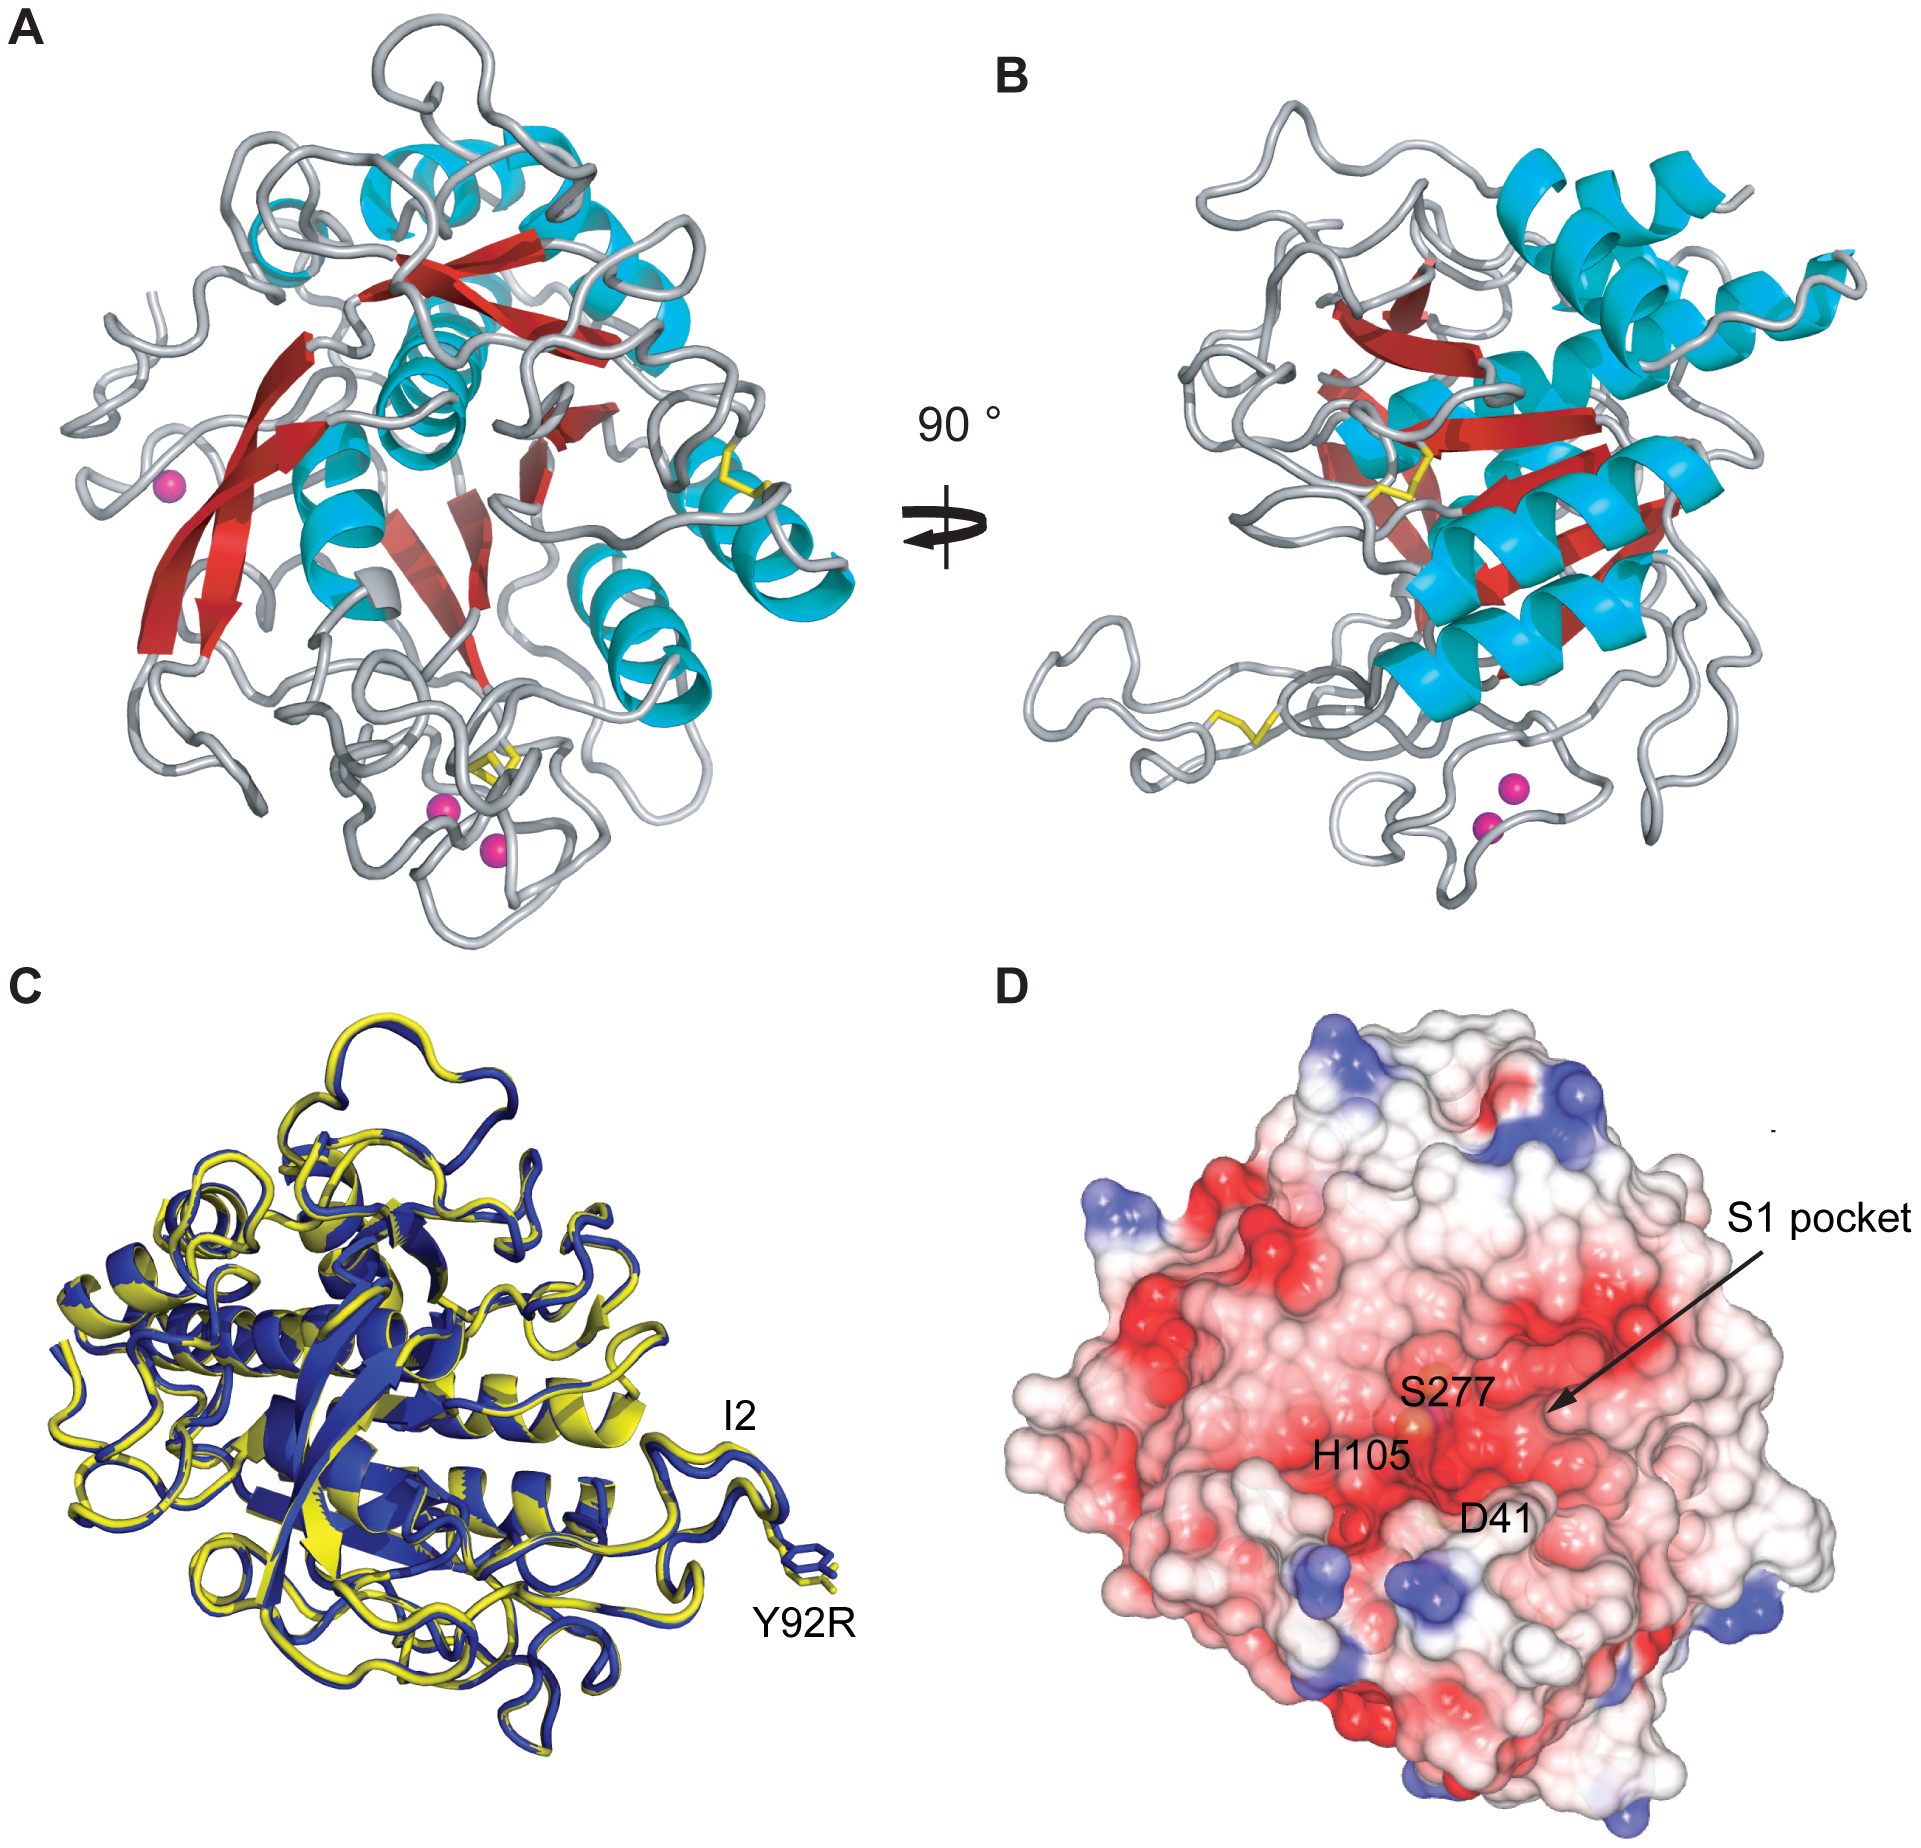 Crystal structure of AprV2.